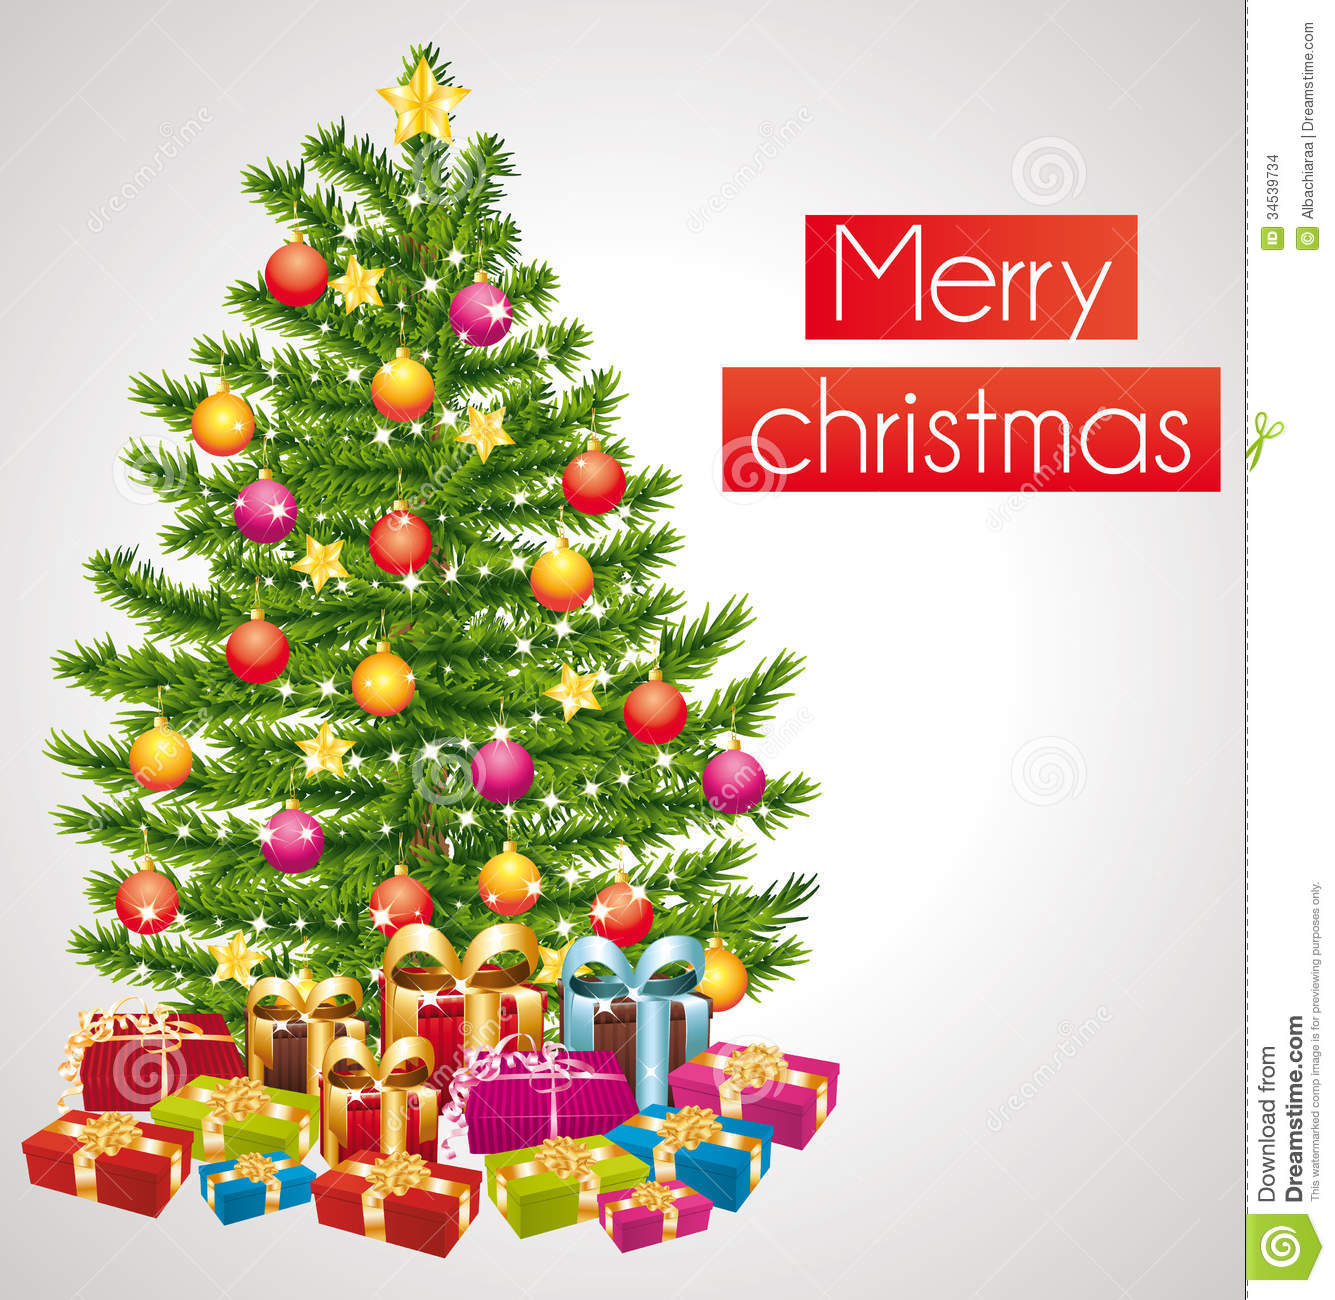 Merry Christmas Greeting Card With Decorated Tree Stock Vector